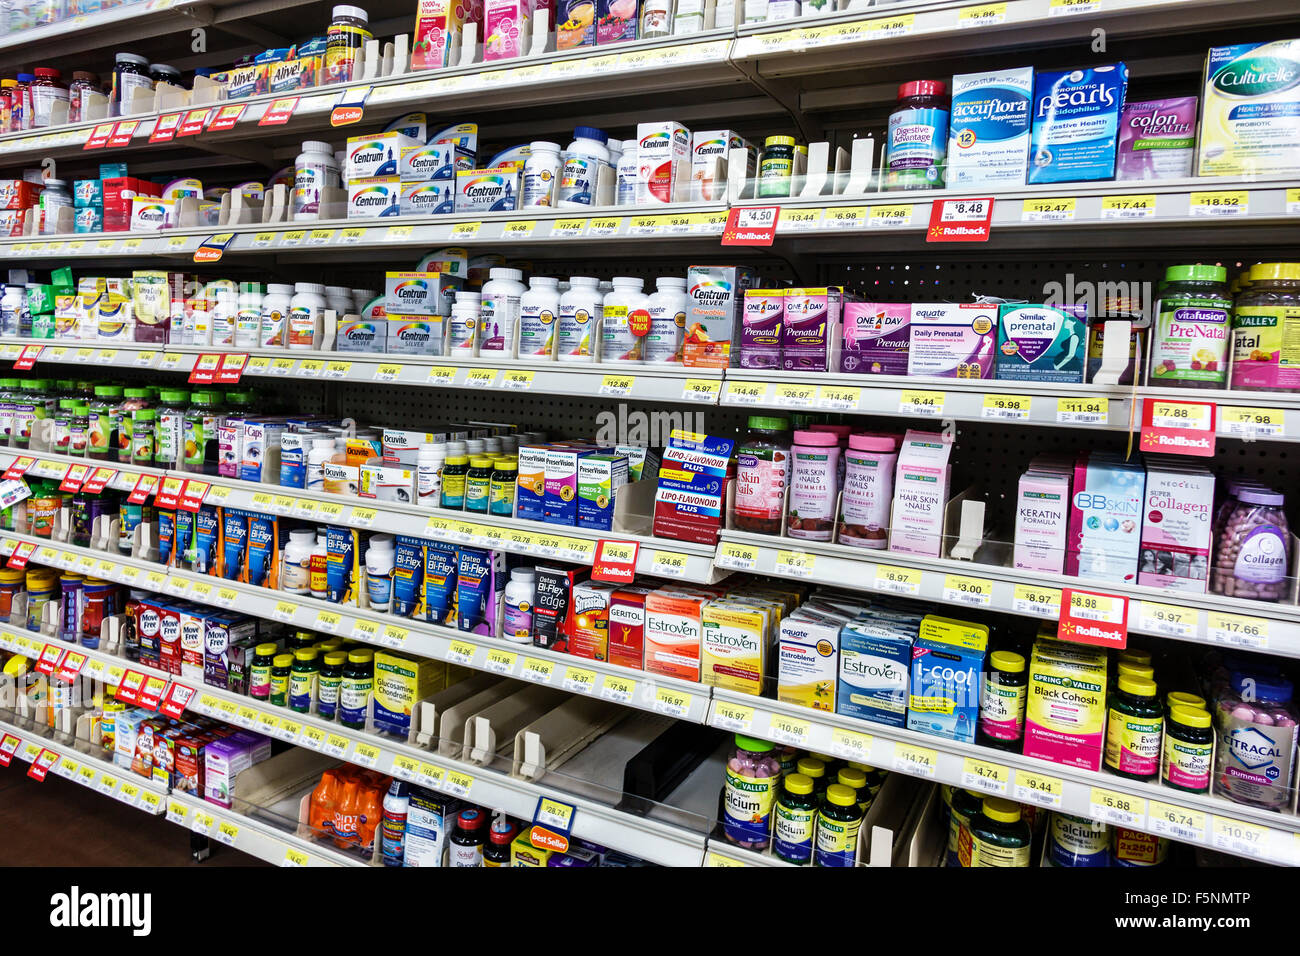 Stuart Florida Walmart shopping sale display shelves vitamins dietary supplements - Stock Image